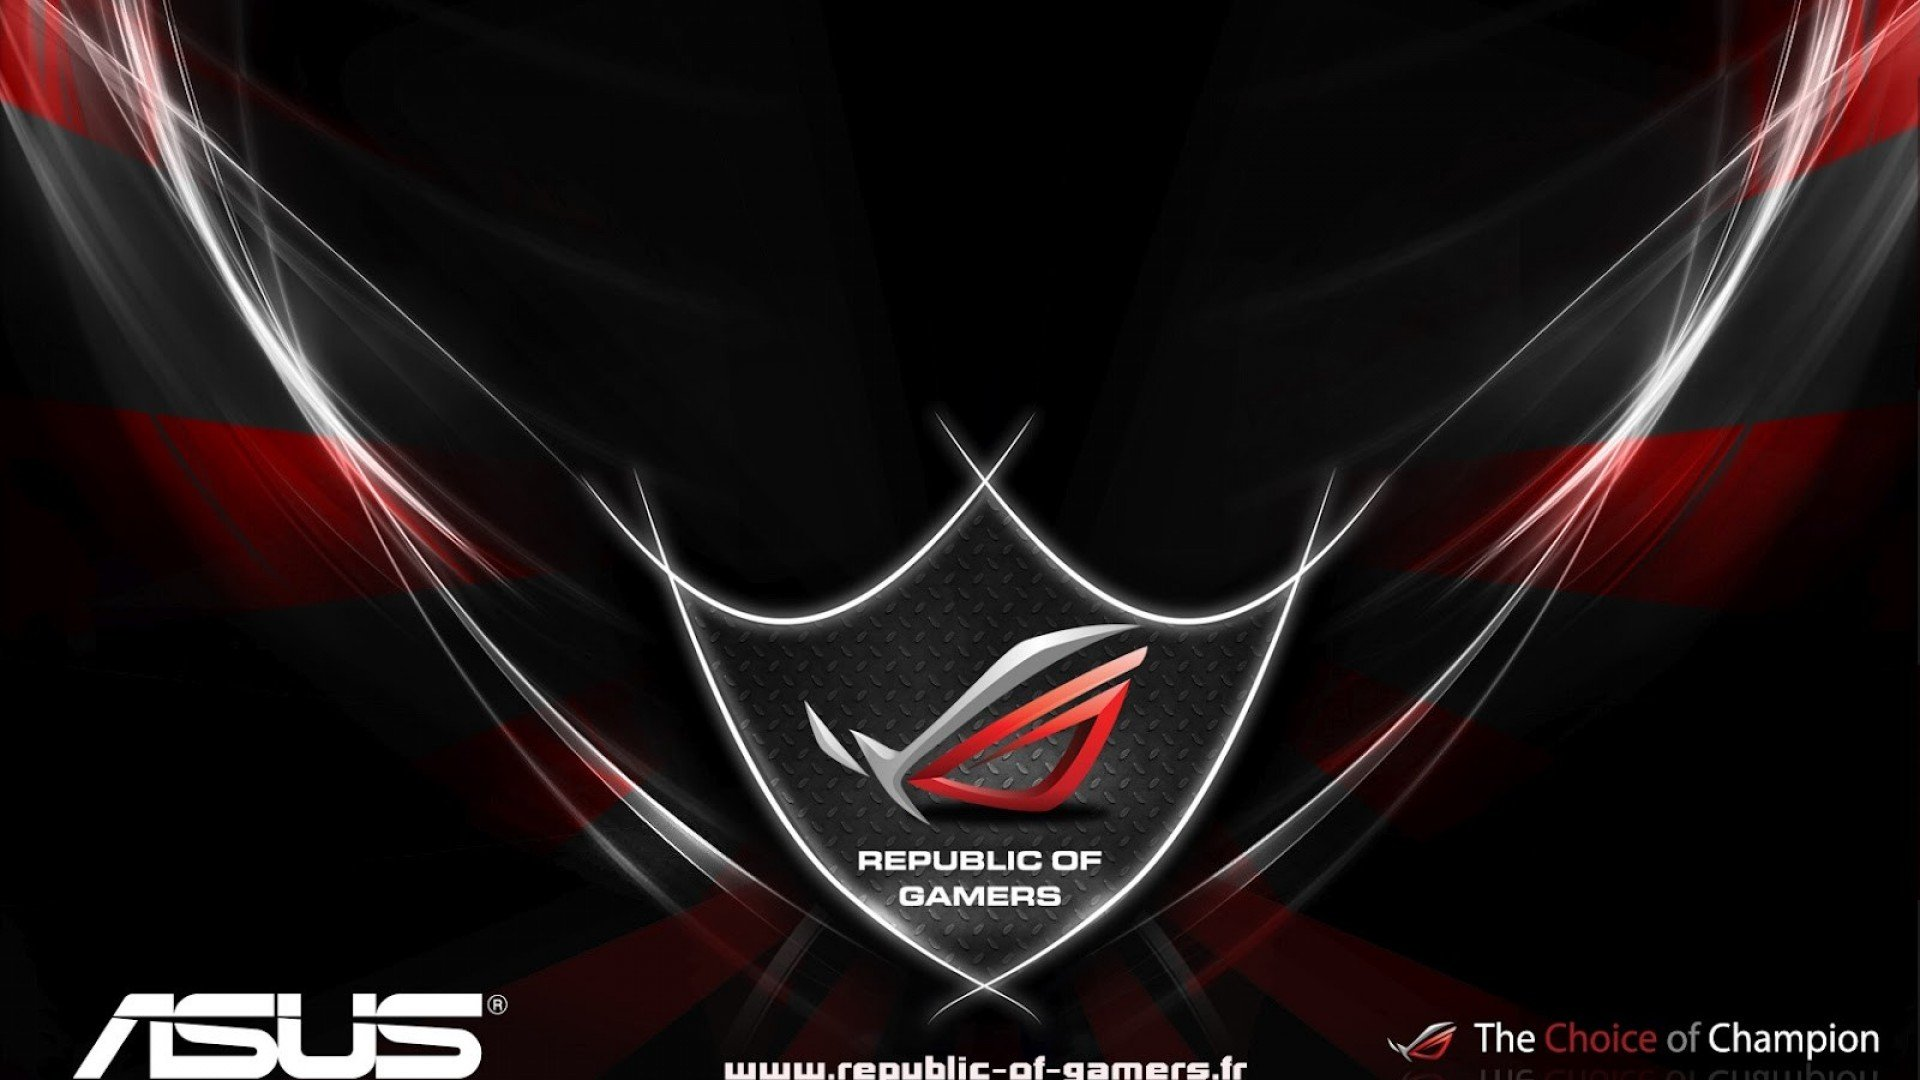 Asus Republic Of Game Logo Hd Wallpaper Wallpaper Gallery